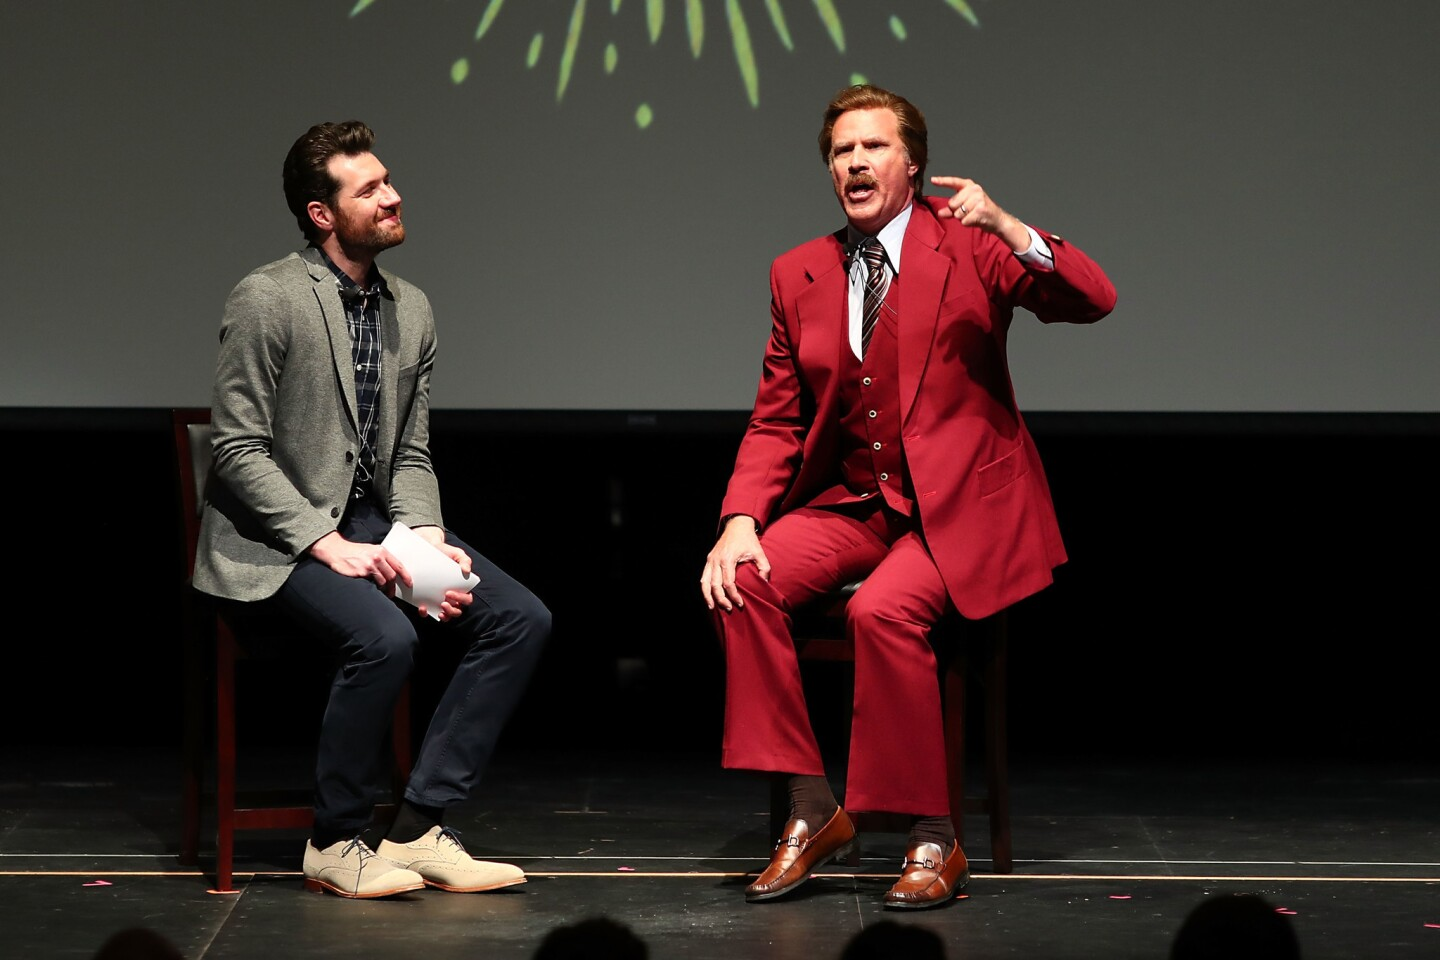 "Billy Eichner and Ron Burgundy (Will Ferrell) ""Glam Up The Midterms"" at Oceanside High School Performing Arts Center, a conversation about the upcoming primary in CA-49 as part of Funny Or Die and Billy Eichner's ""Glam Up The Midterms"" non-partisan campaign to encourage young people to vote."